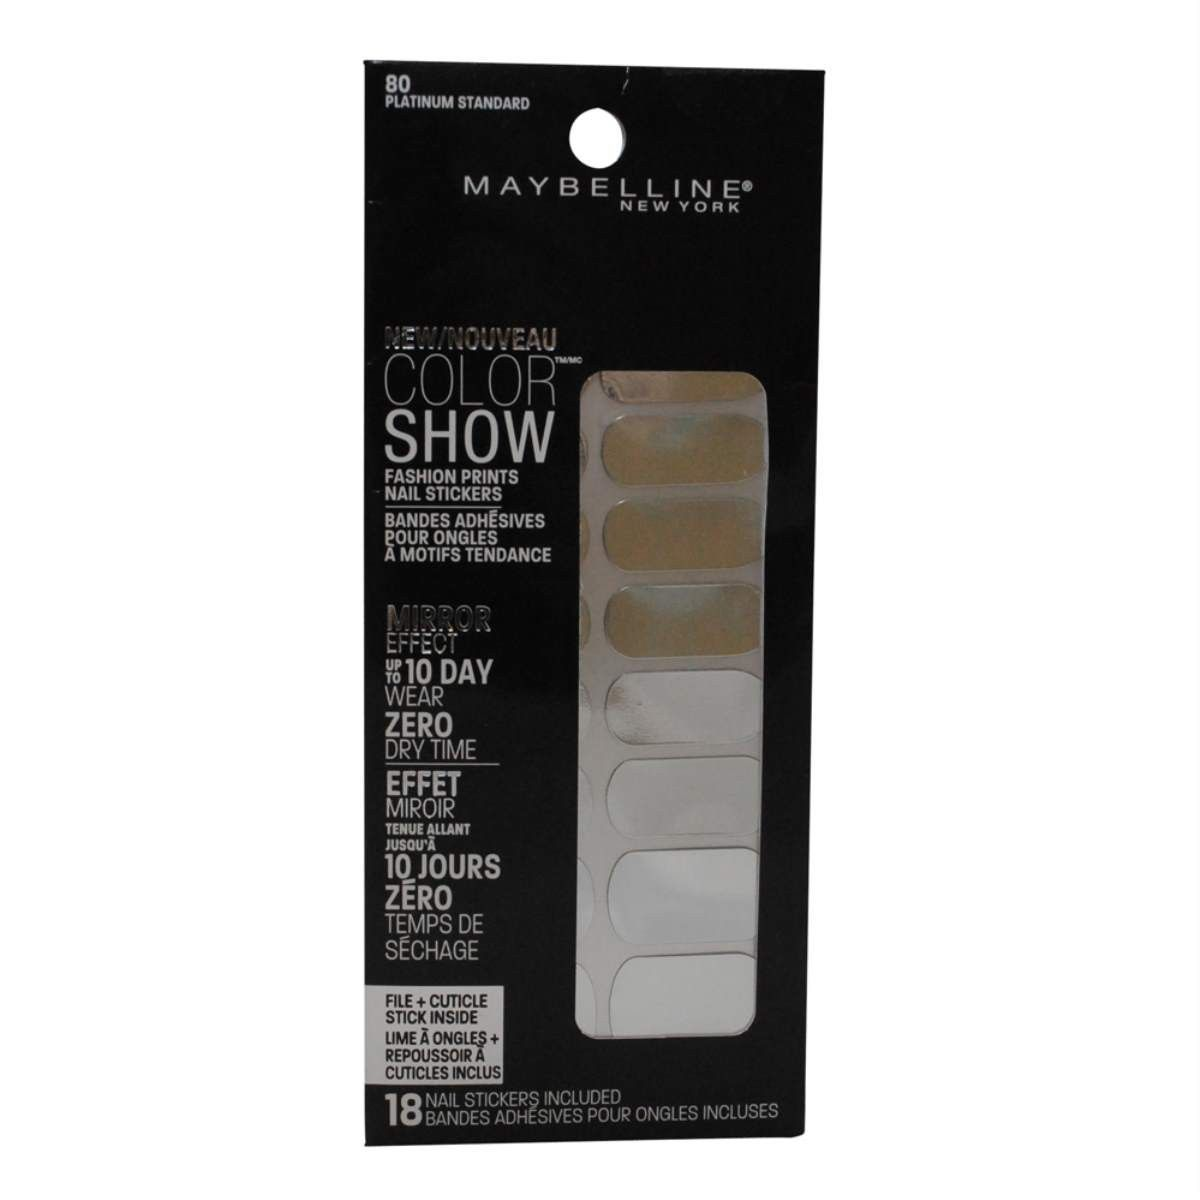 Maybelline Color Show Fashion Prints Nail Stickers #80 Platinum ...